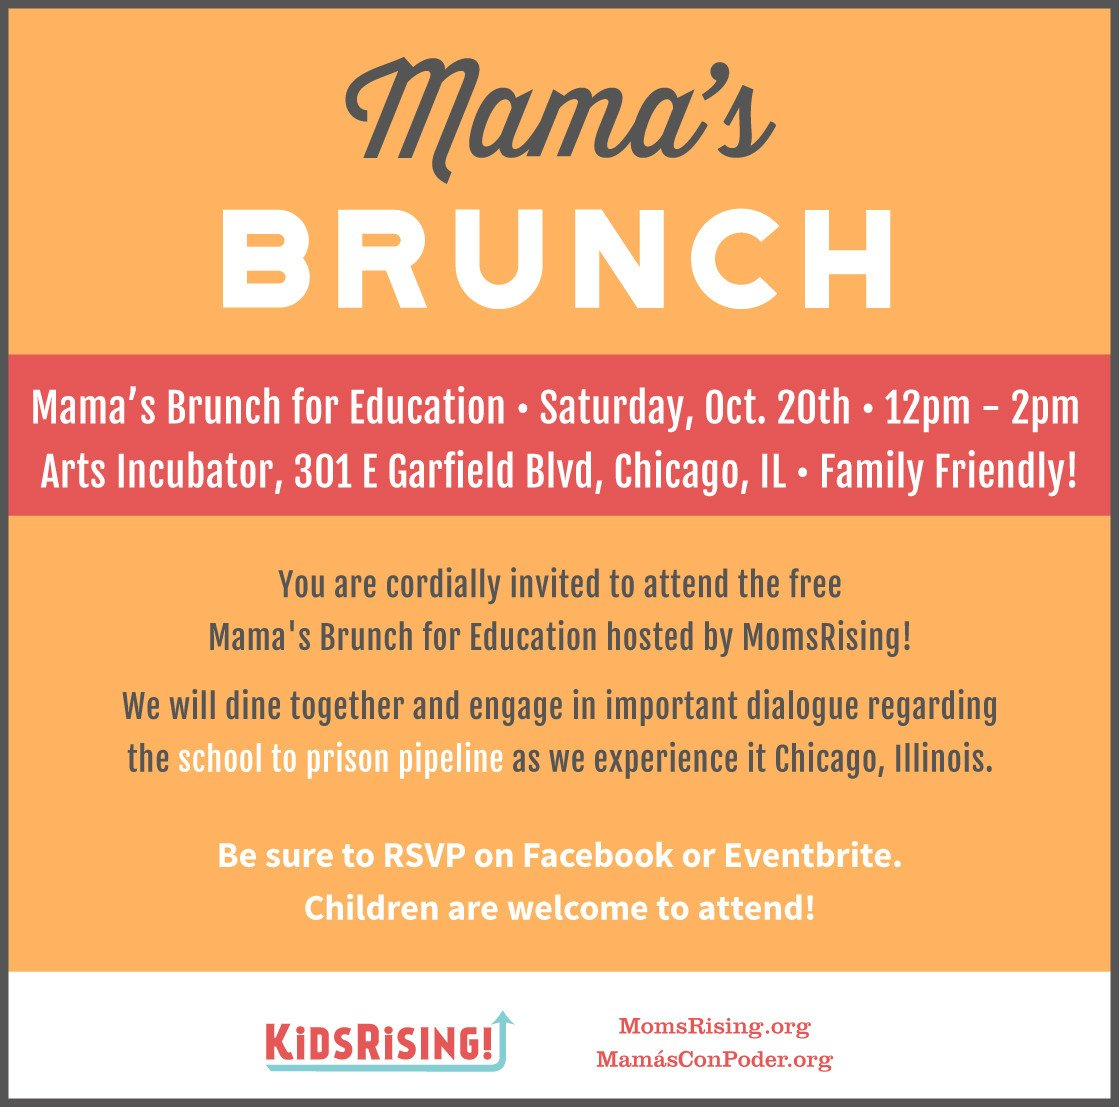 October is #JuvenileJusticeMonth! We want to help activate moms and families to take action on dismantling the #SchooltoPrisonPipeline and build our collective power. Attend our Mama's Brunch ☕️ at @artspubliclife in CHICAGO, IL - SAT, 10/20 at 12PM. https://t.co/Dkok1jBjA4